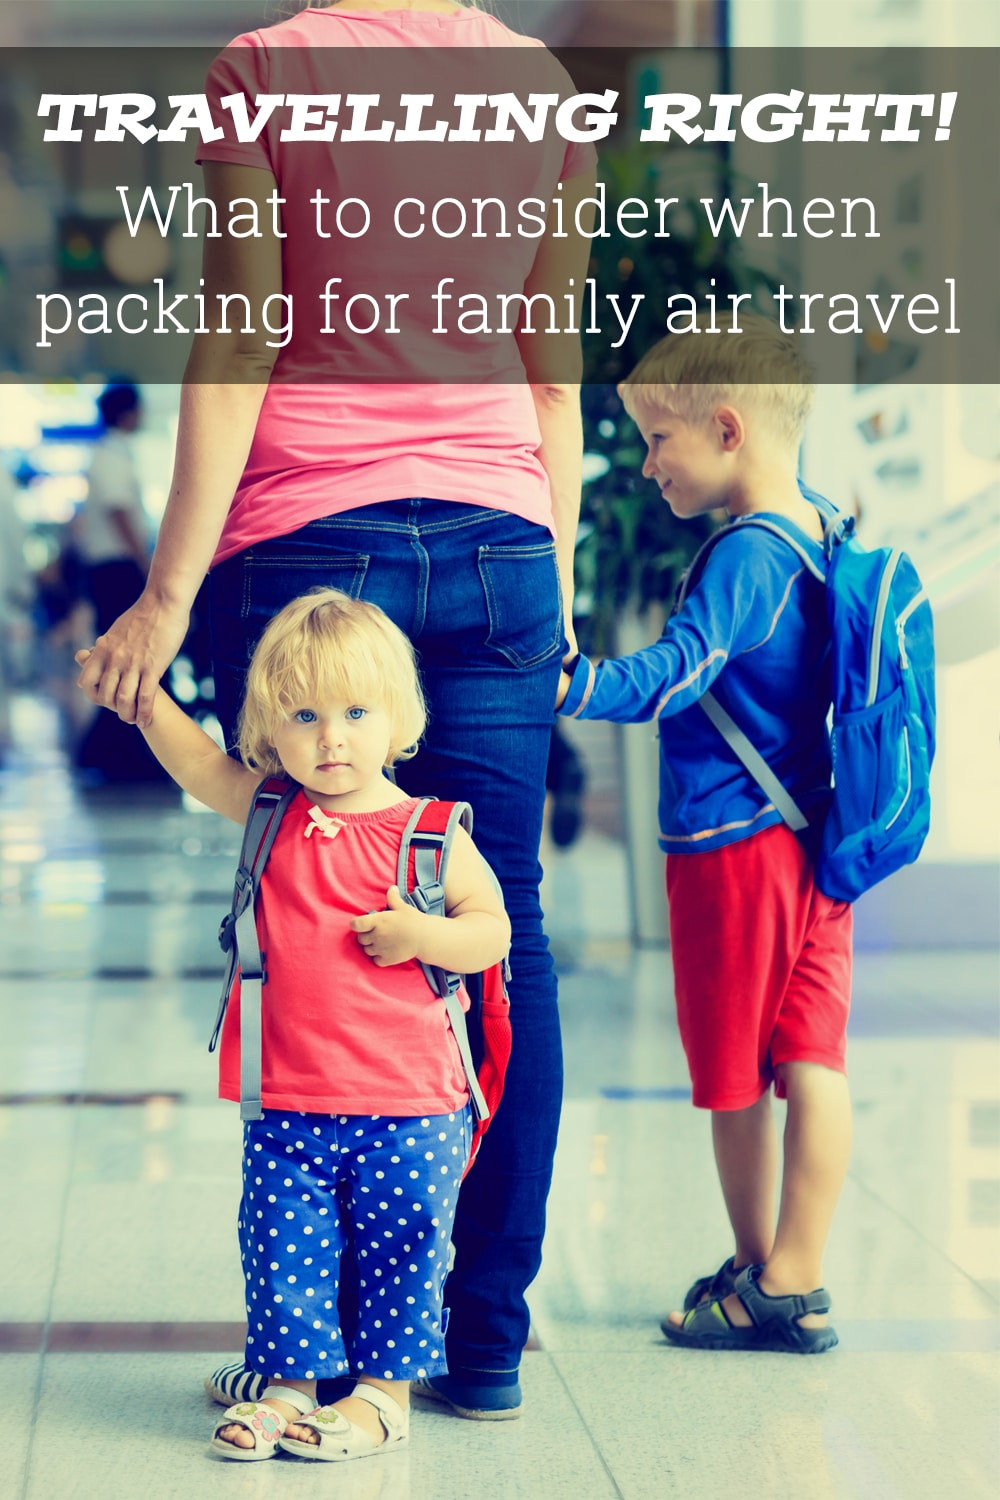 What to consider when packing for family air travel